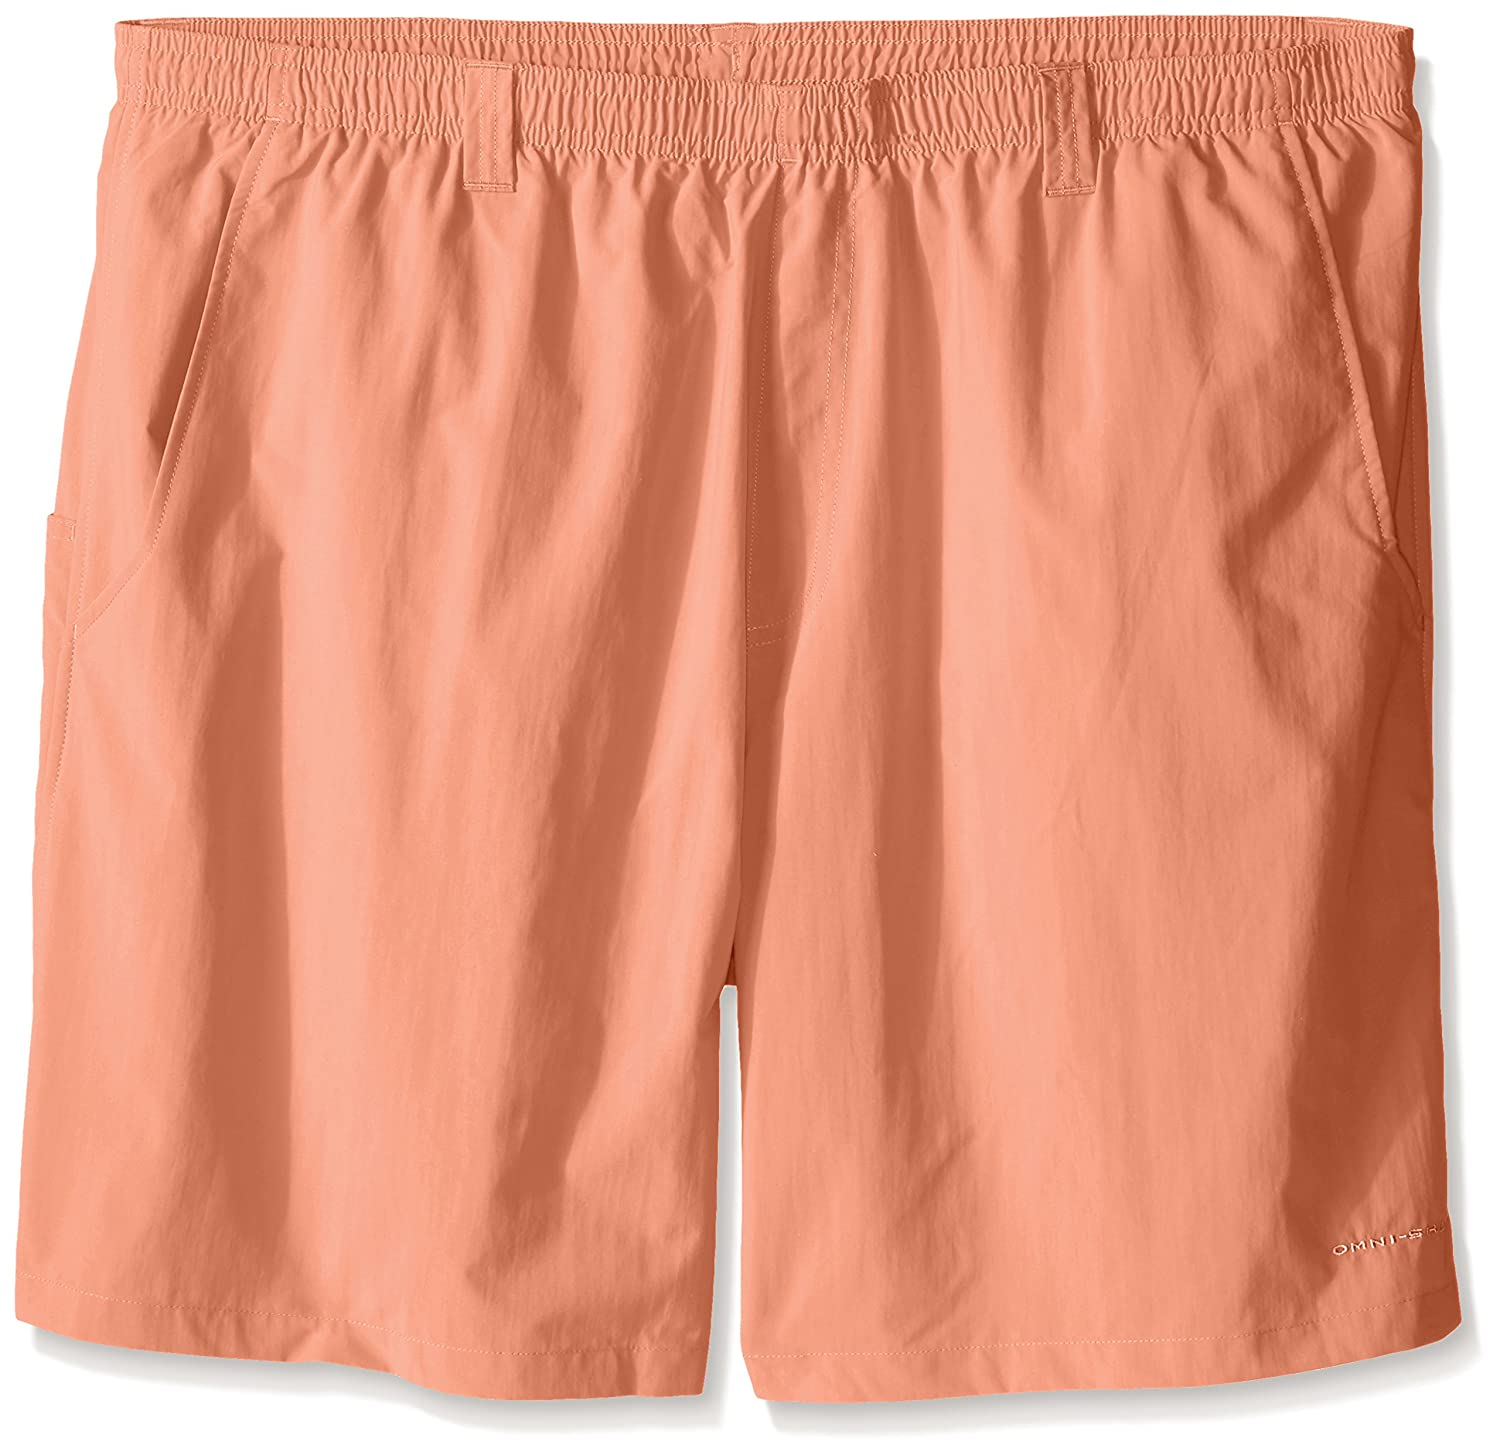 Columbia Men's Backcast III Water Big Shorts Columbia (Sporting Goods)